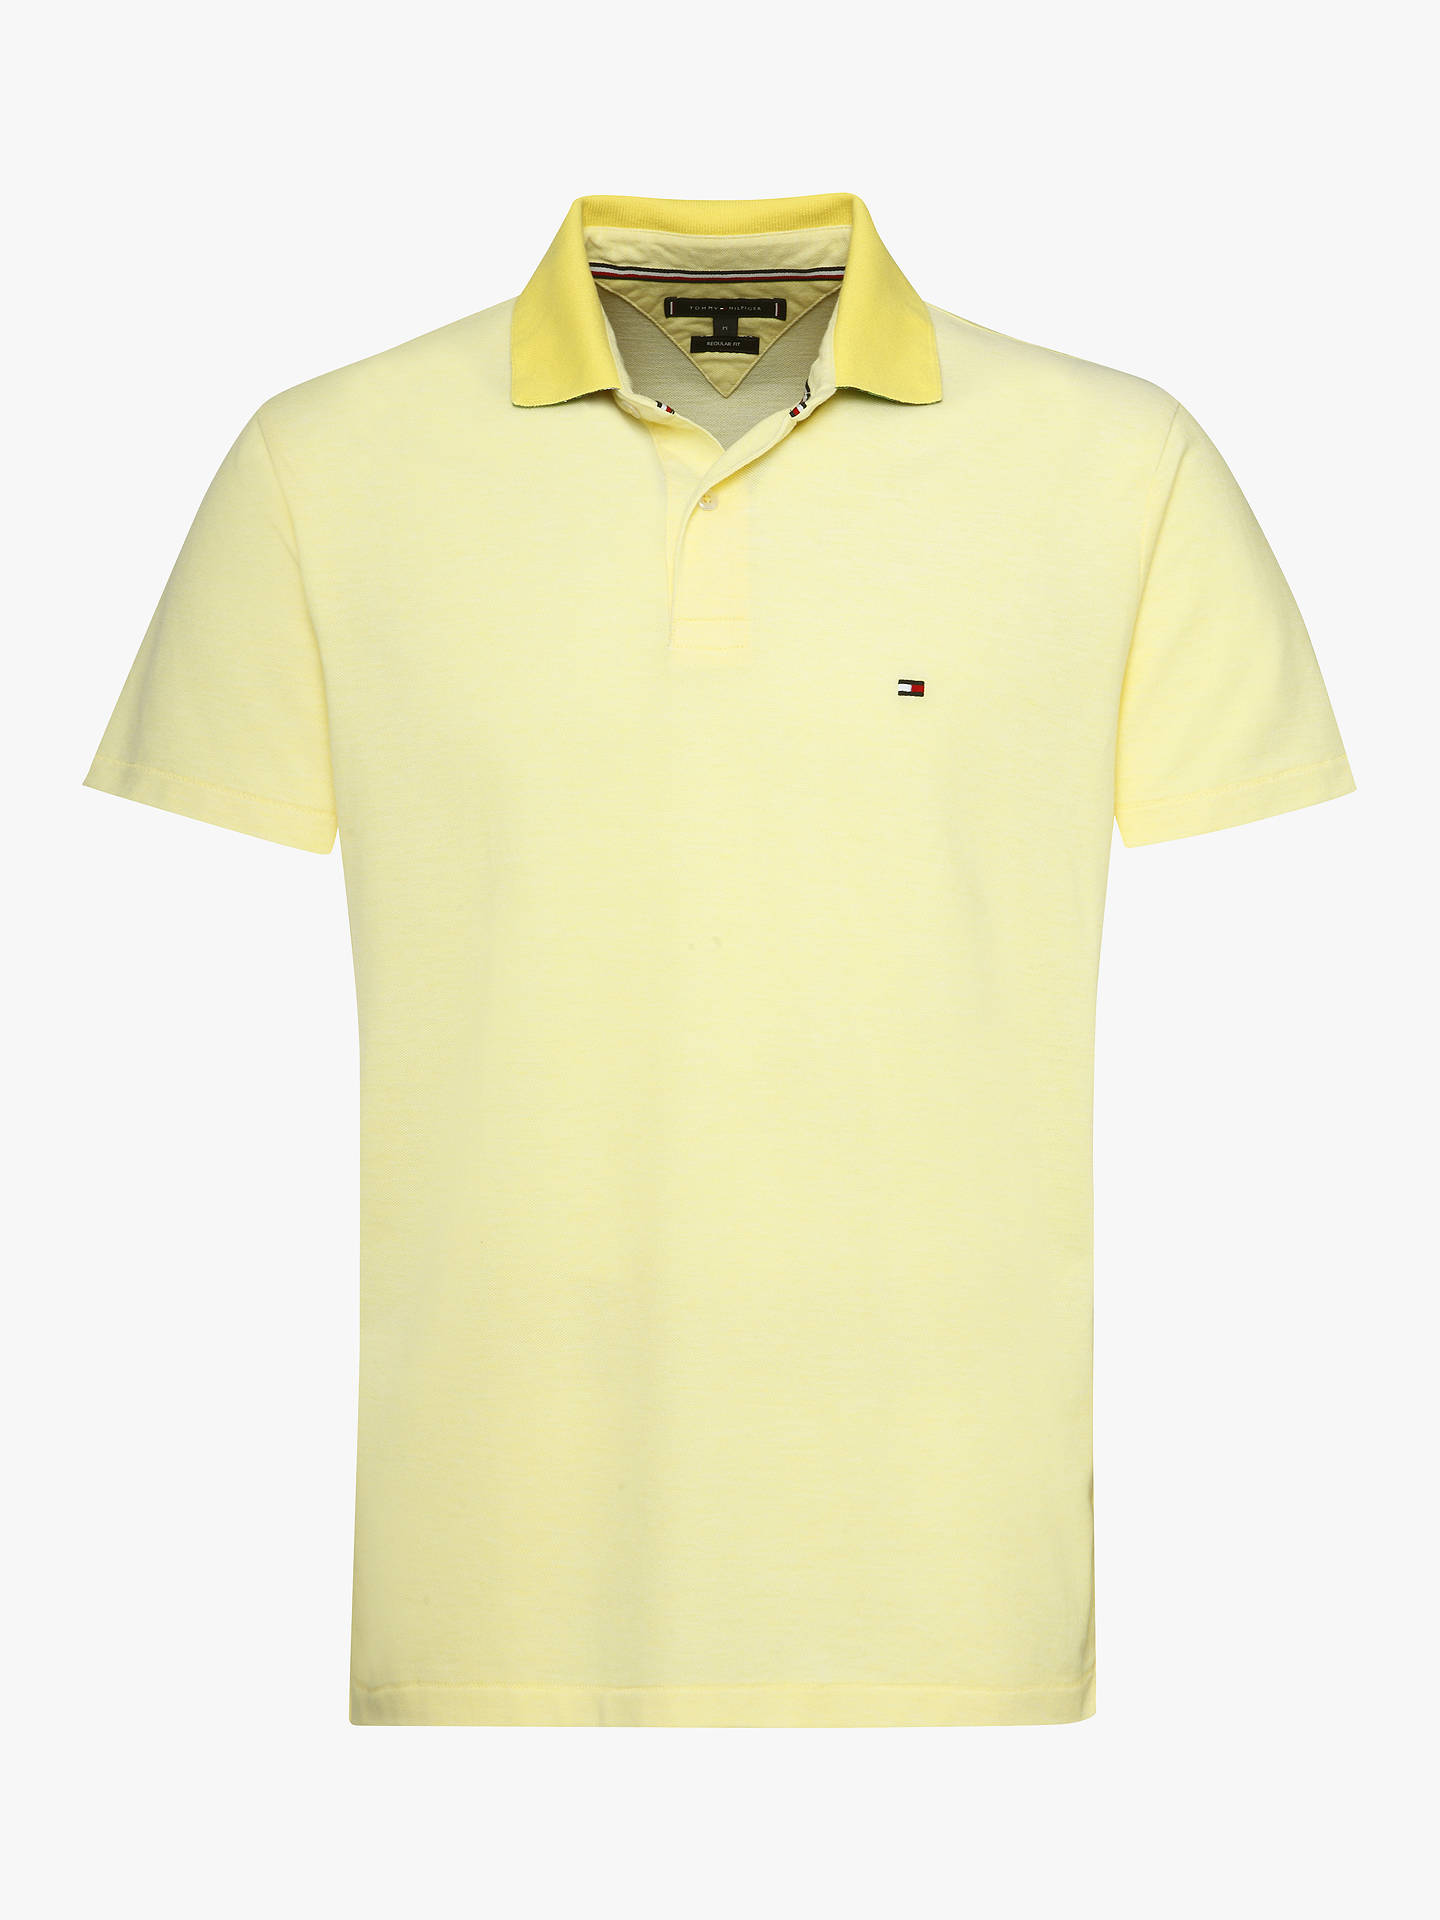 49ddd8ec Buy Tommy Hilfiger Under Collar Print Regular Polo Shirt, Yellow, M Online  at johnlewis ...